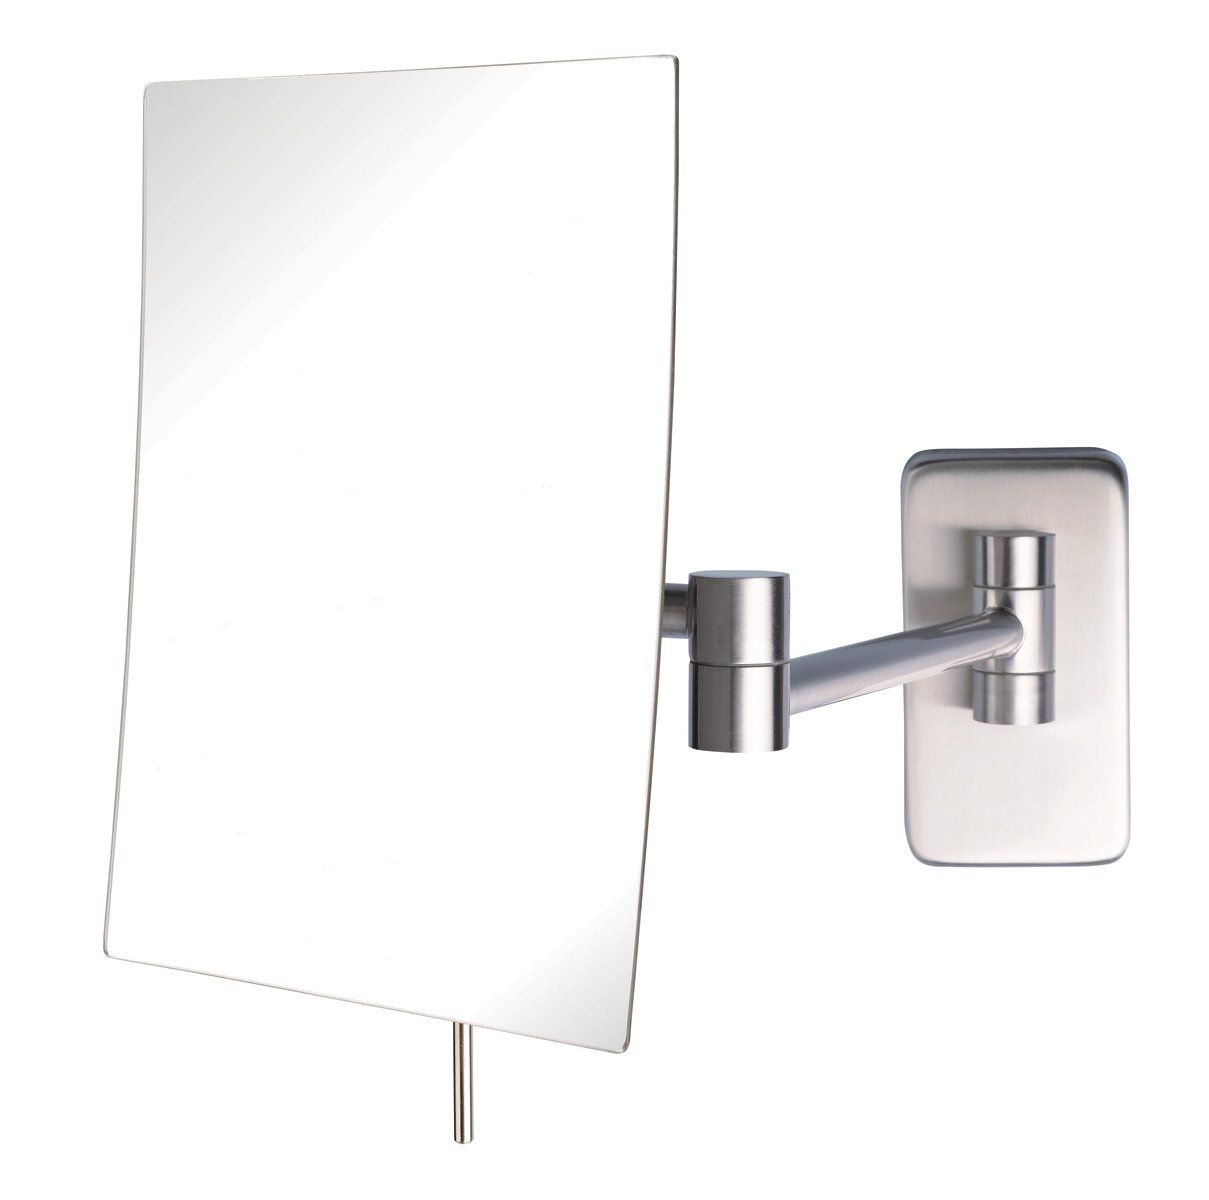 Have loved this mirror since I used it at our hotel on vacay! $65